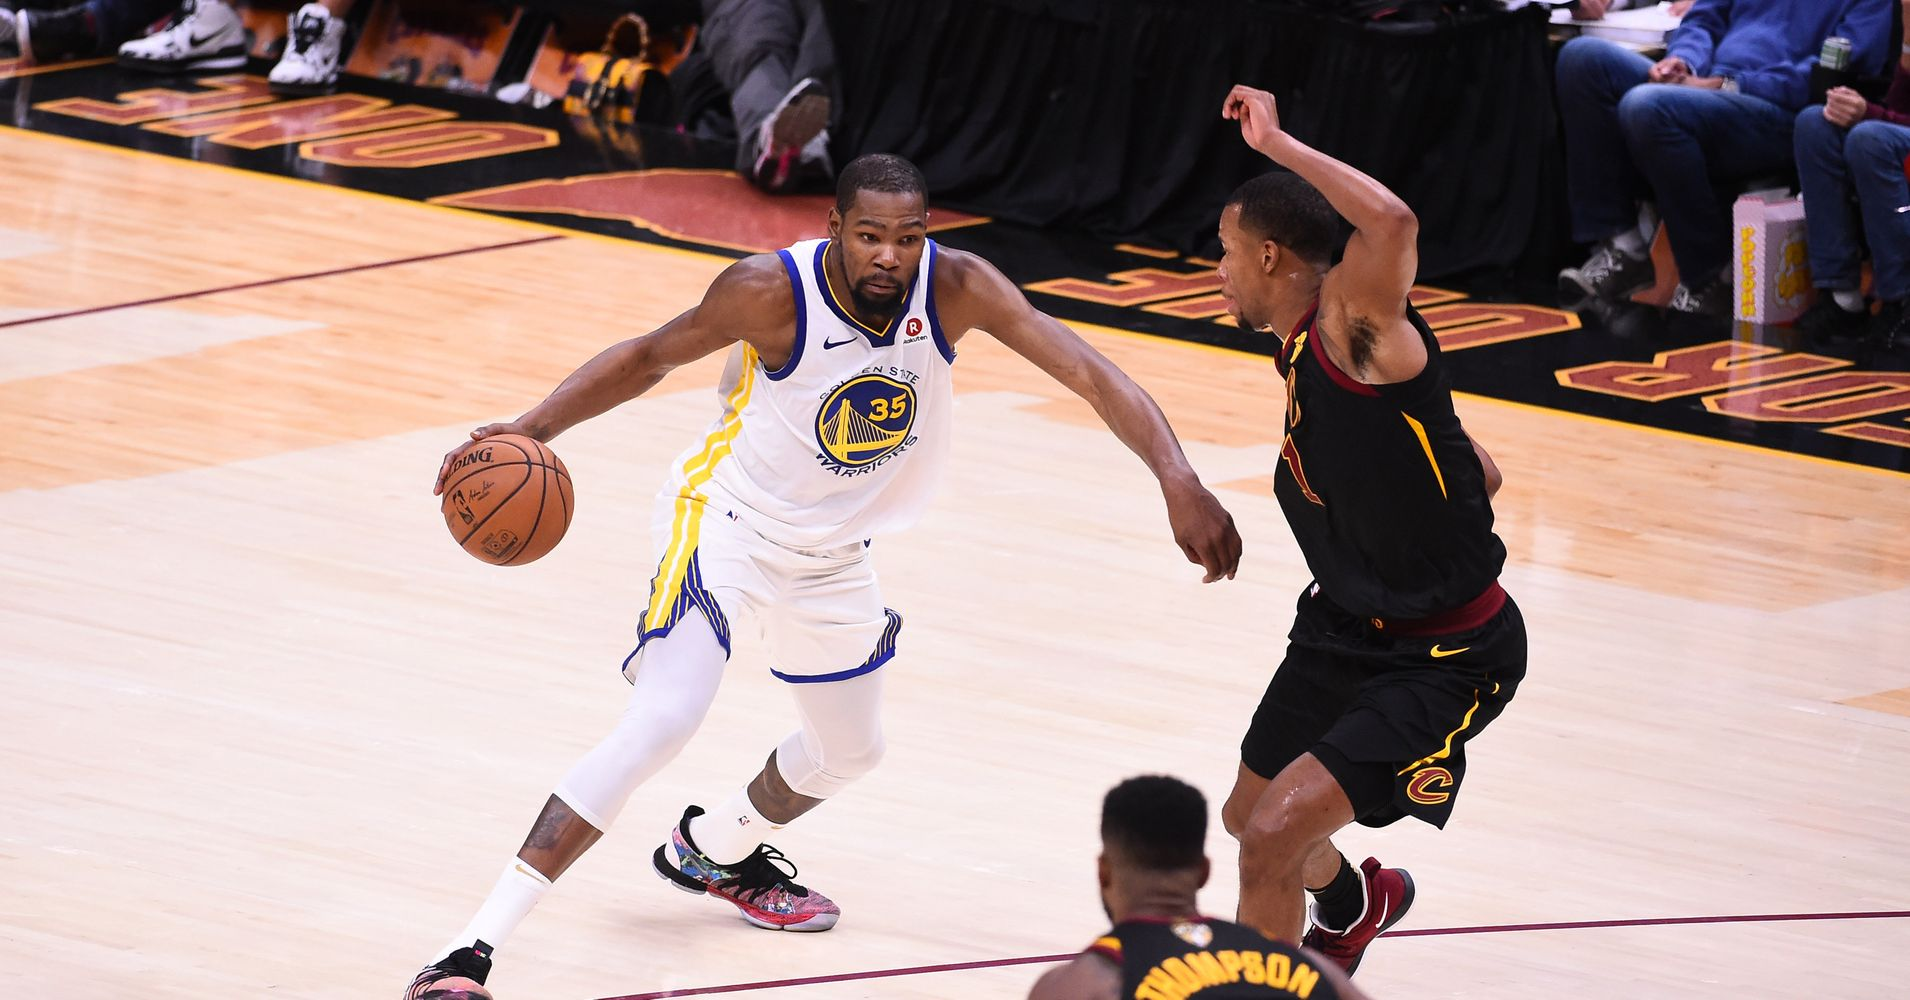 2d4120daf04f Kevin Durant s Game 3 In NBA Finals Impresses The Heck Out Of Fellow  Players